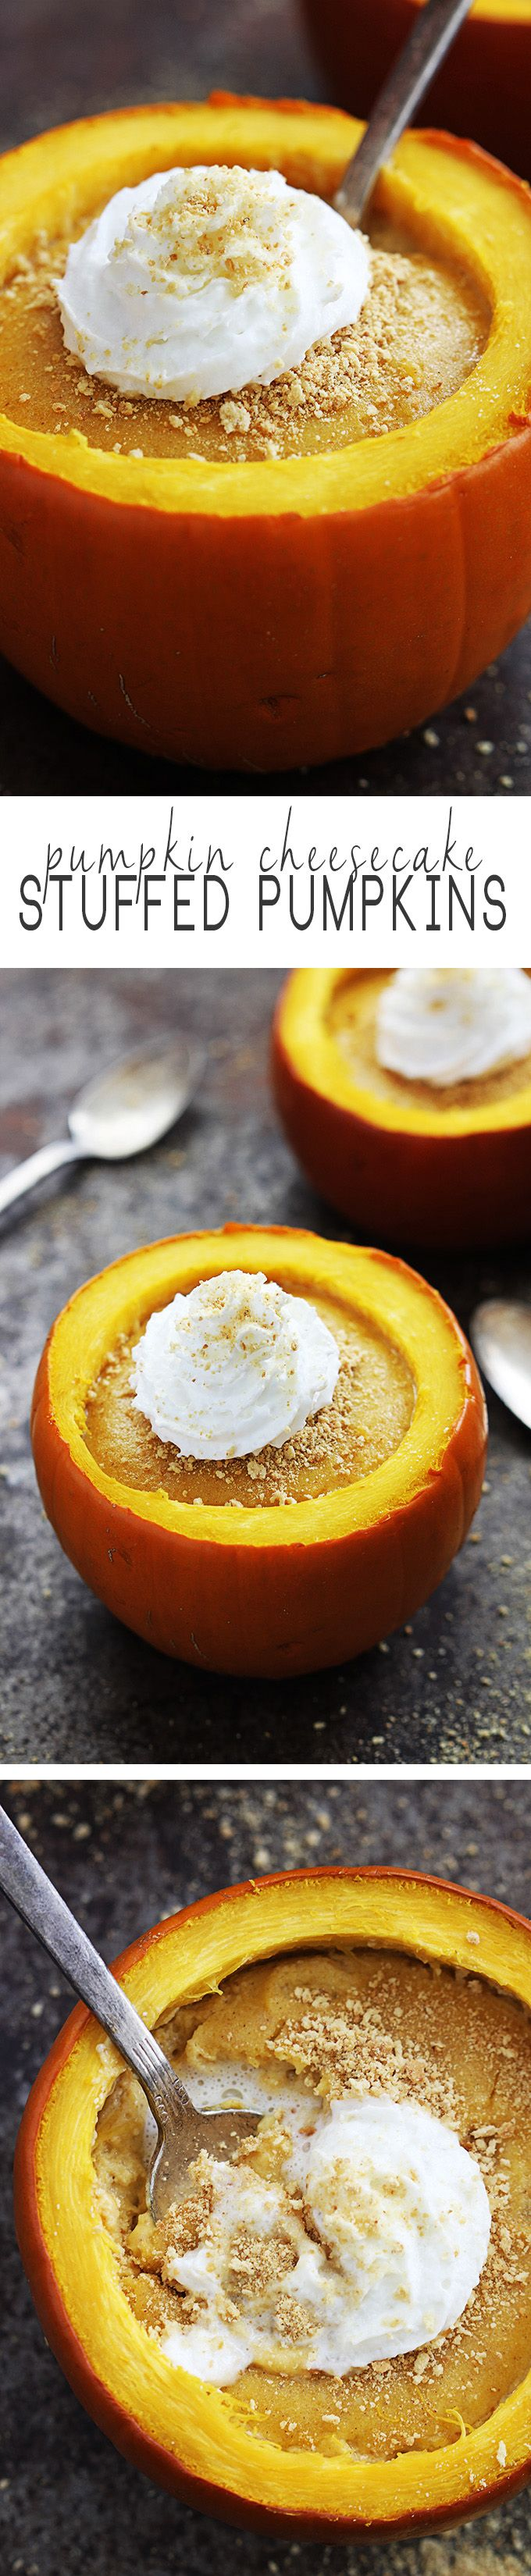 These festive pumpkin cheesecake stuffed pumpkins are the perfect way to serve up a tasty fall dessert this season. You won't believe how easy this recipe is!